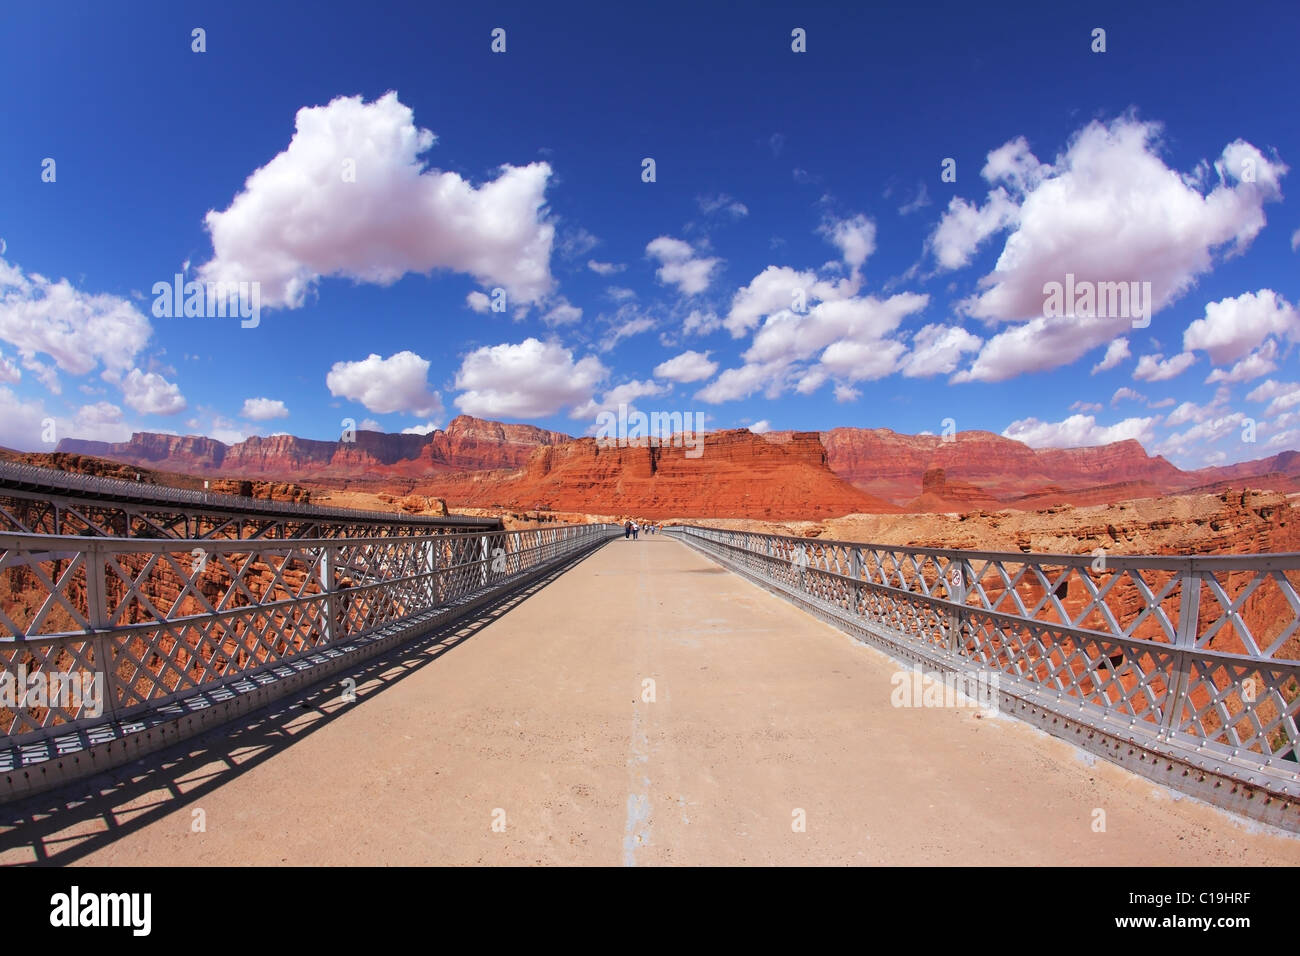 The bridge over the Colorado River and shining light clouds - Stock Image